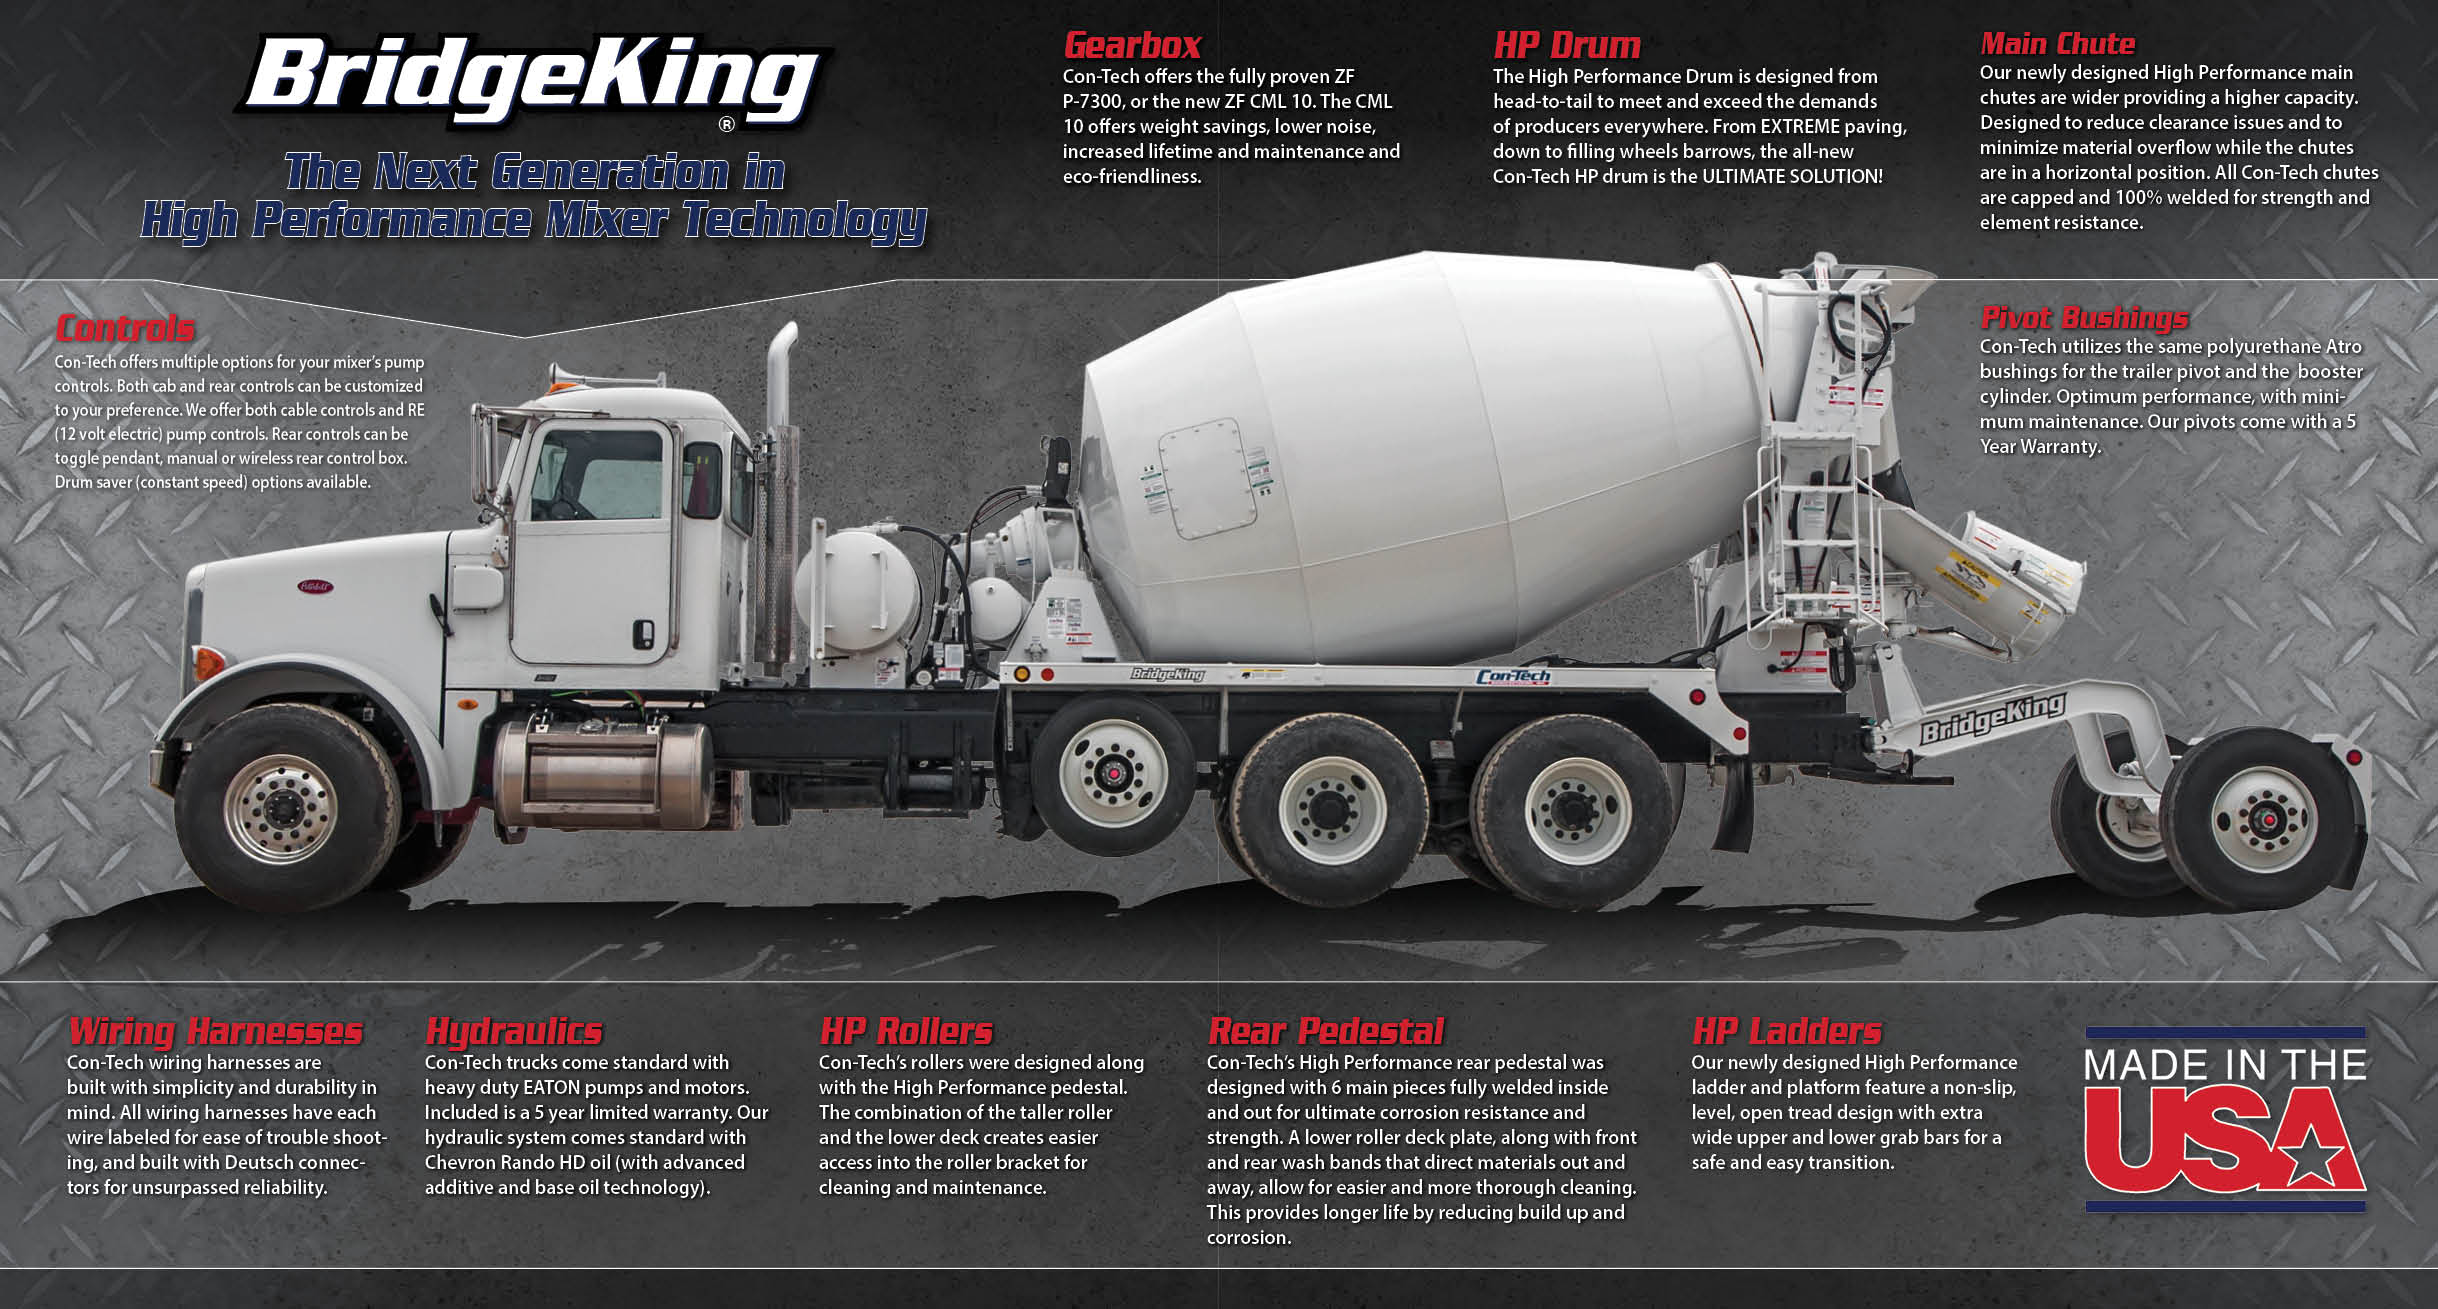 BridgeKing: The next generation in high performance mixer